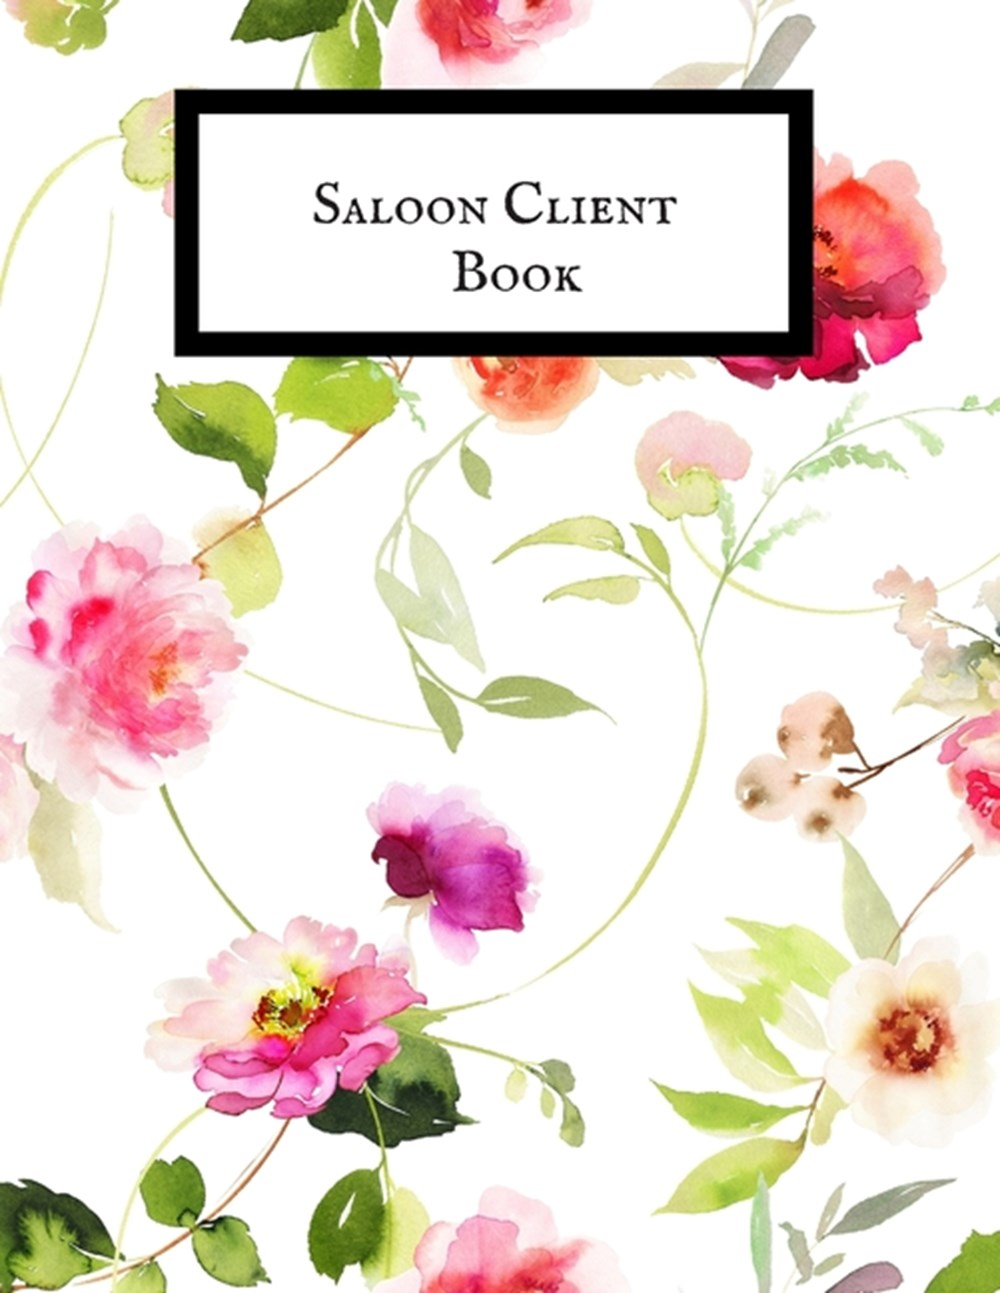 Saloon Client Book Smart A-Z Alphabetical Client Tracker- Professional Business To do list Book for